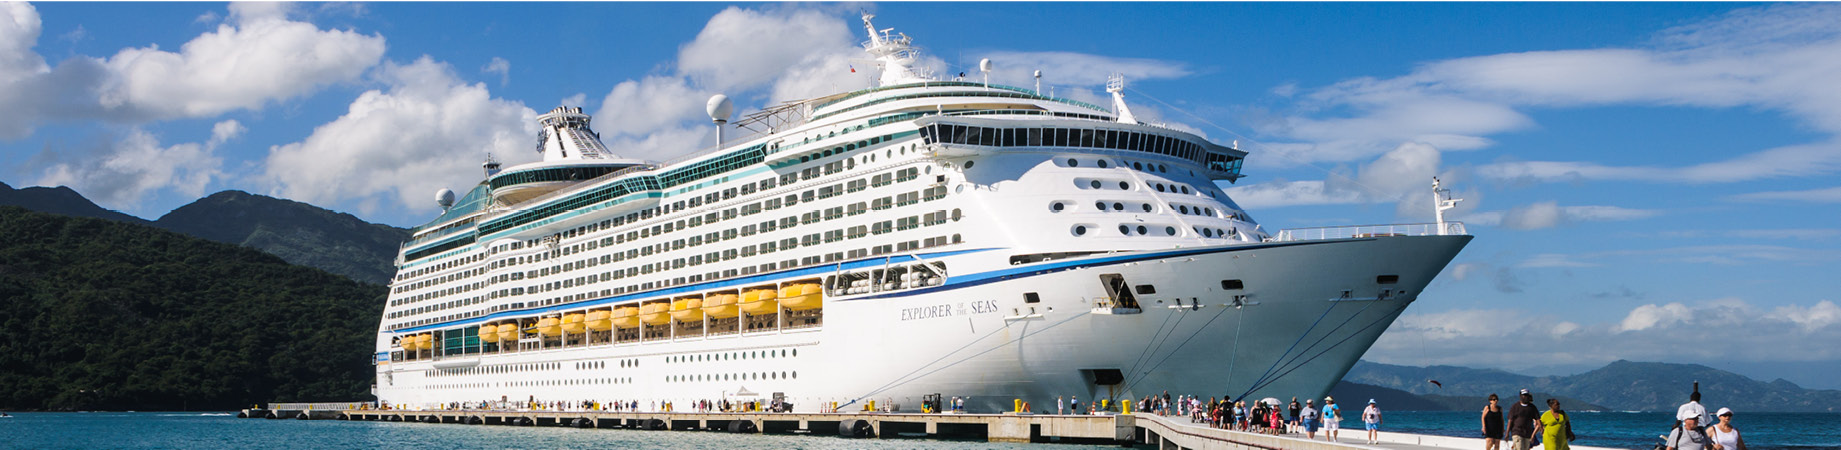 All Aboard with Eve - Cruise Expert